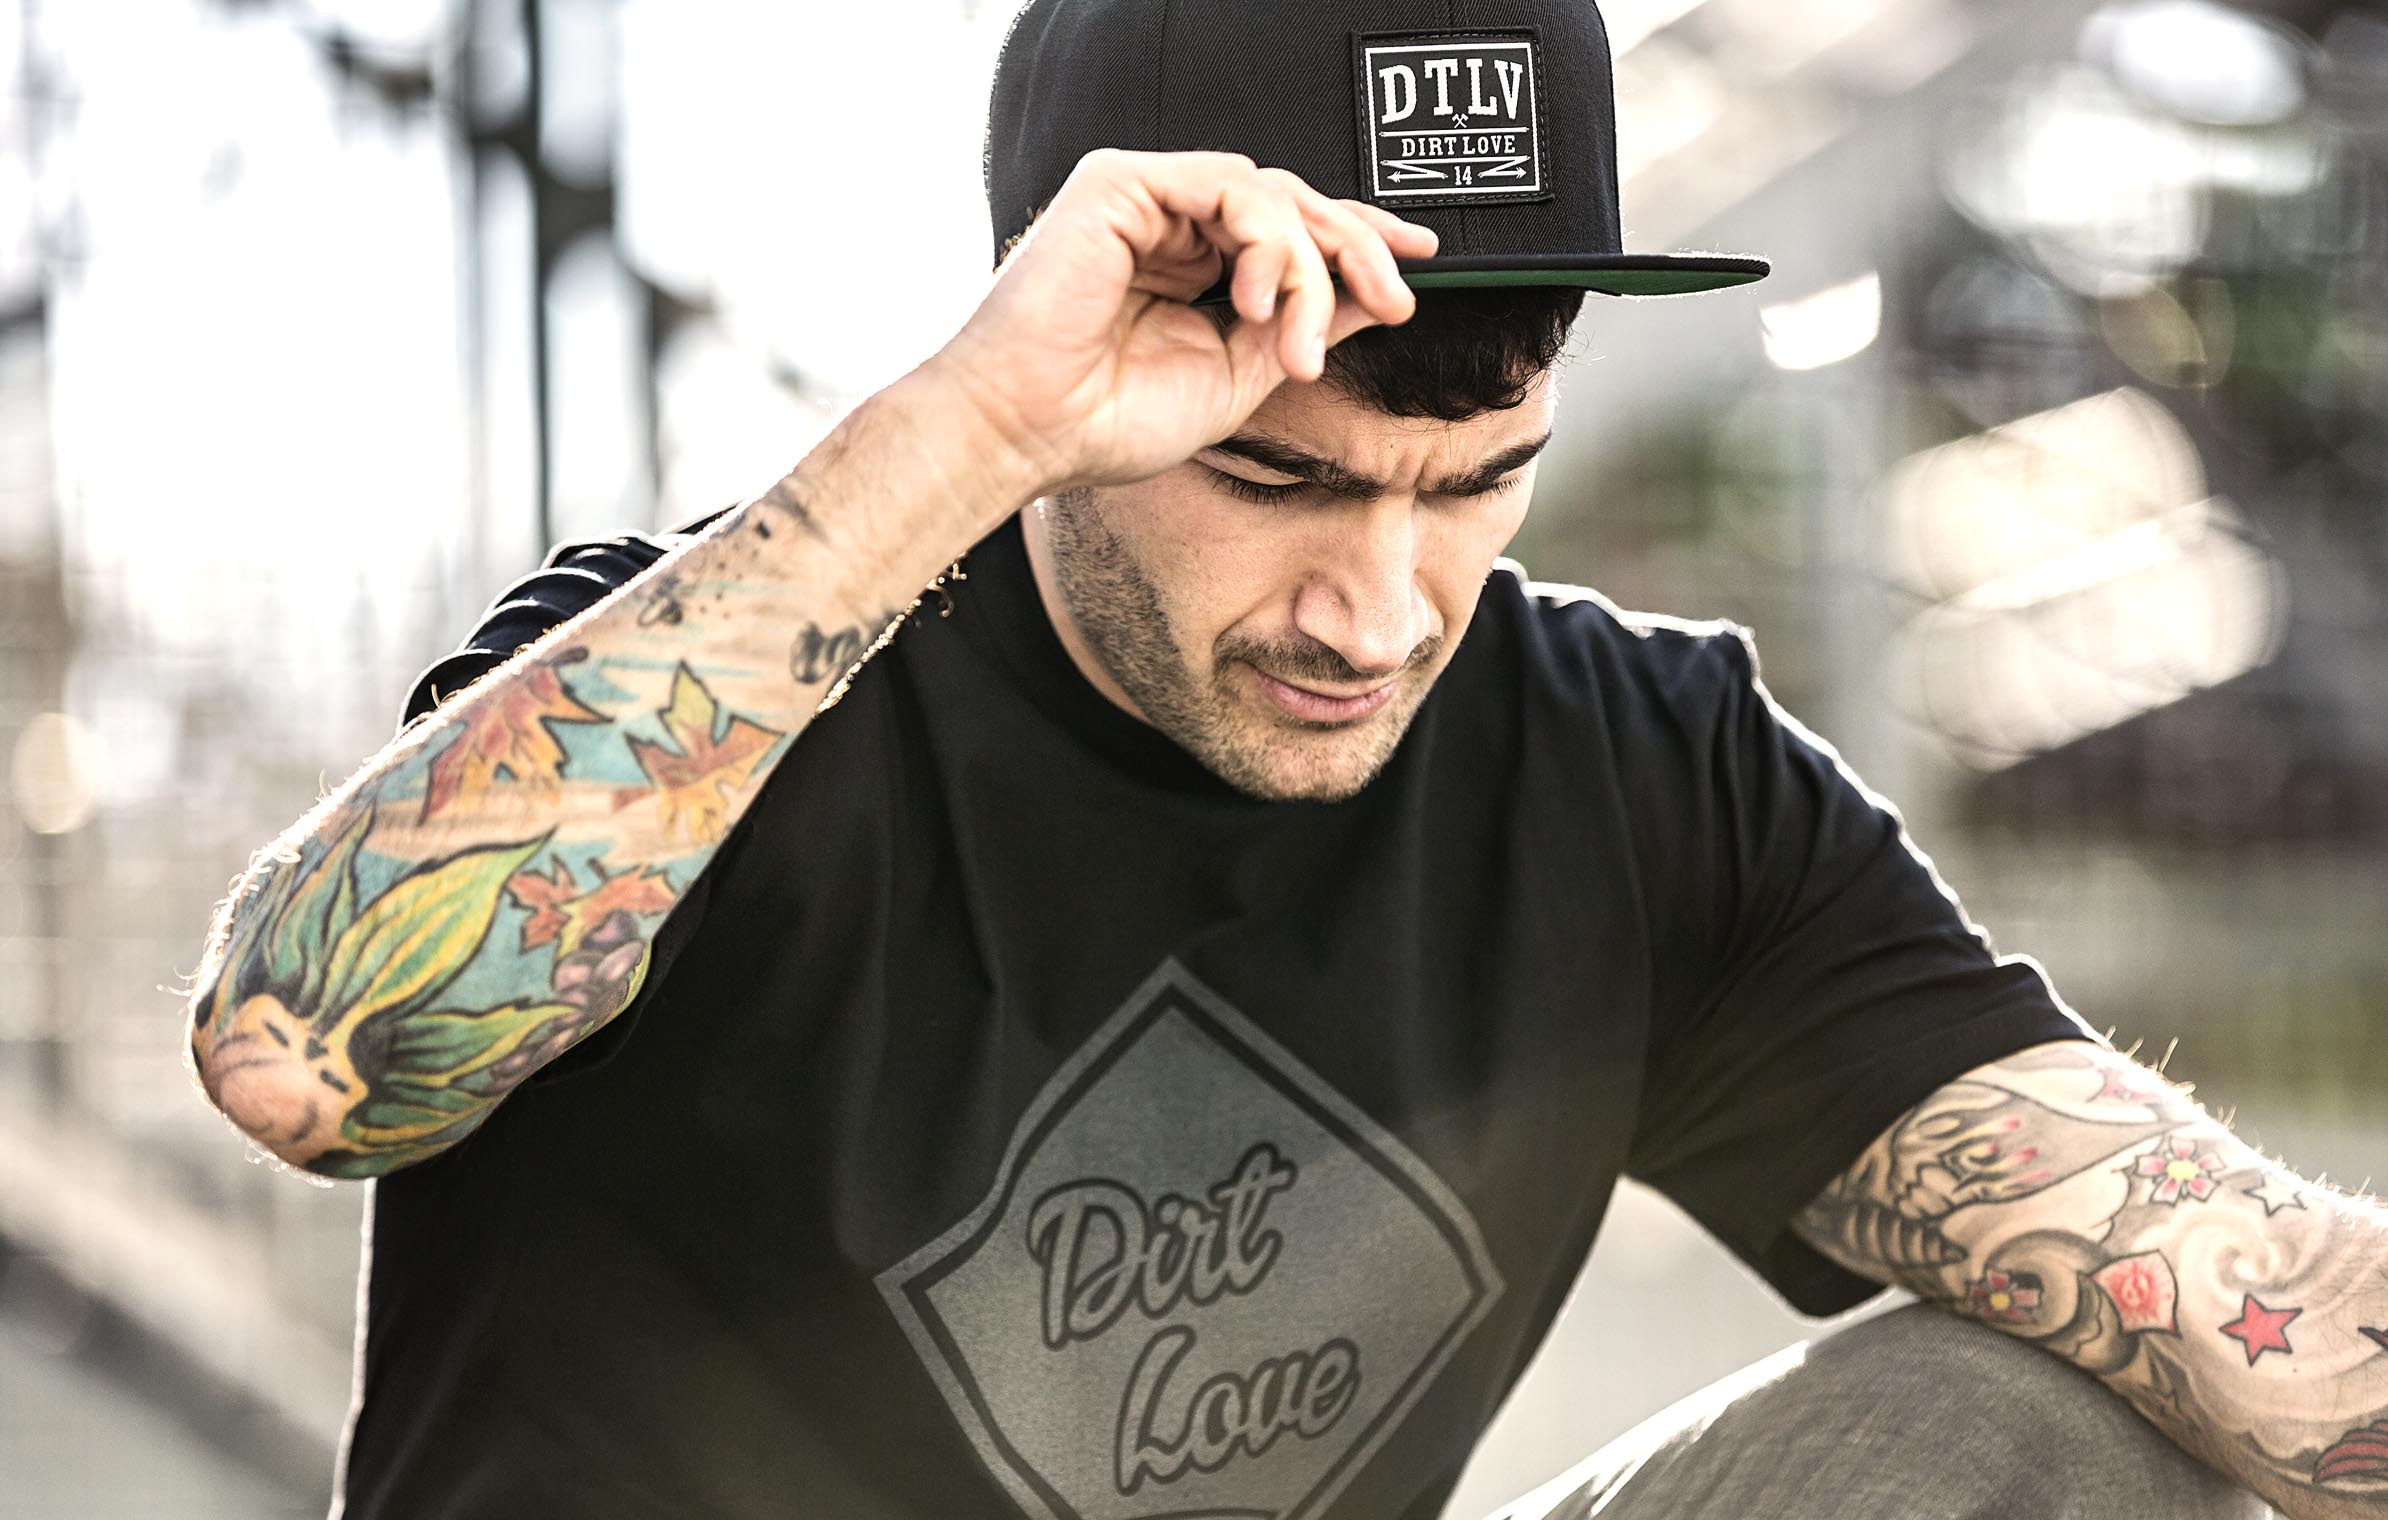 dirt_love_fasion_cap_shirt